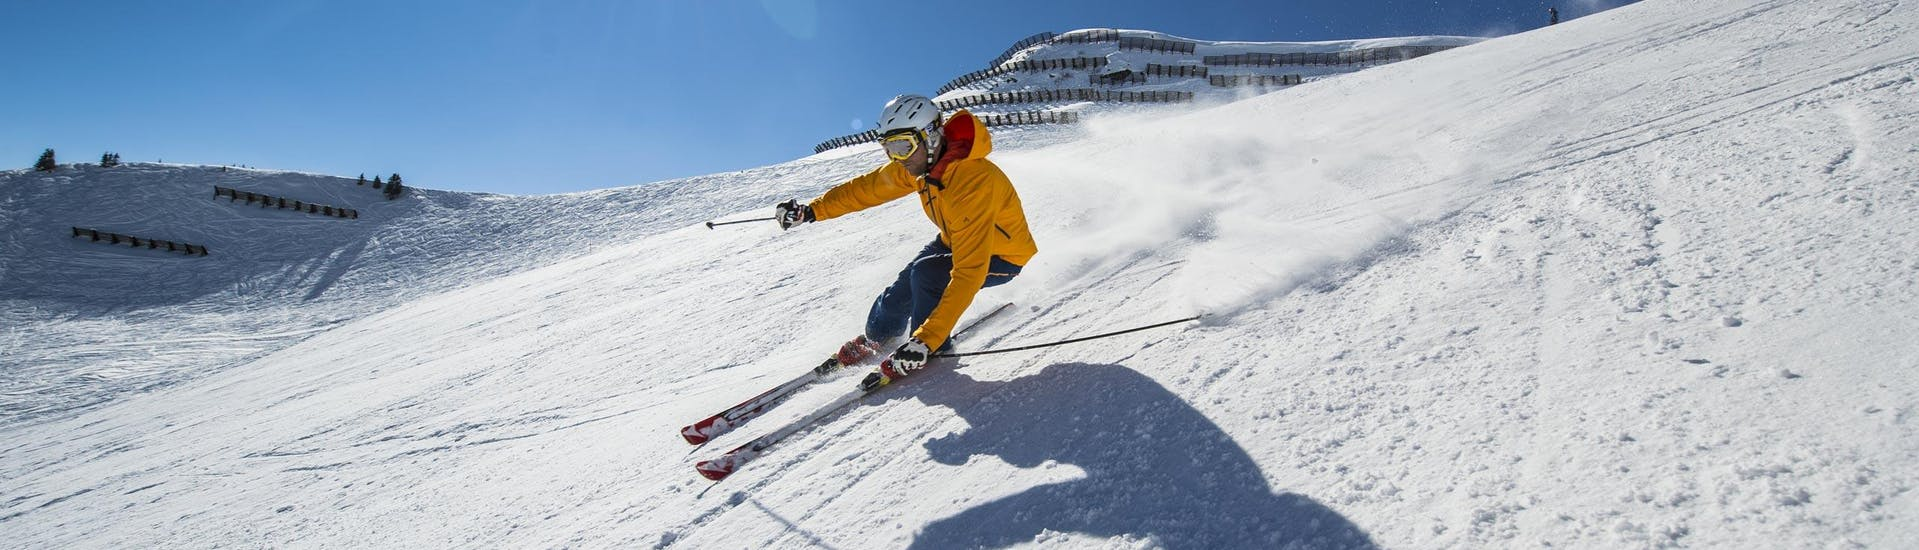 Private Ski Lessons for Families: A skier is skiing down a sunny ski slope while participating in an activity offered by Wolfgang Platzer - Ski School Snowsport IGLS.